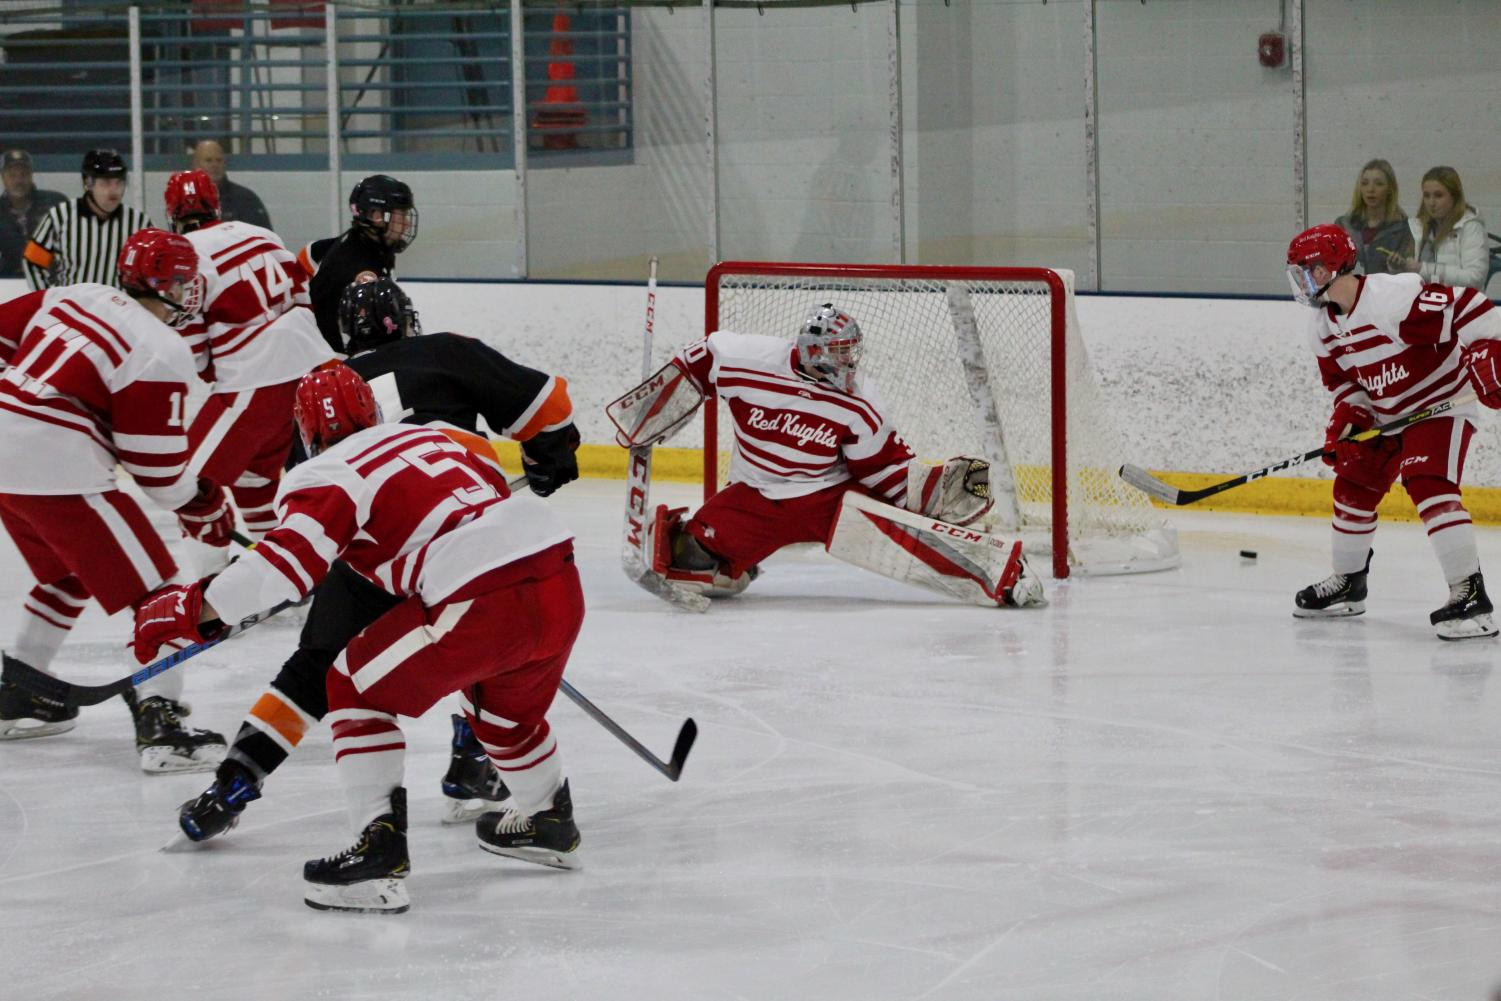 BSM boys' defend well in order to prevent a goal.